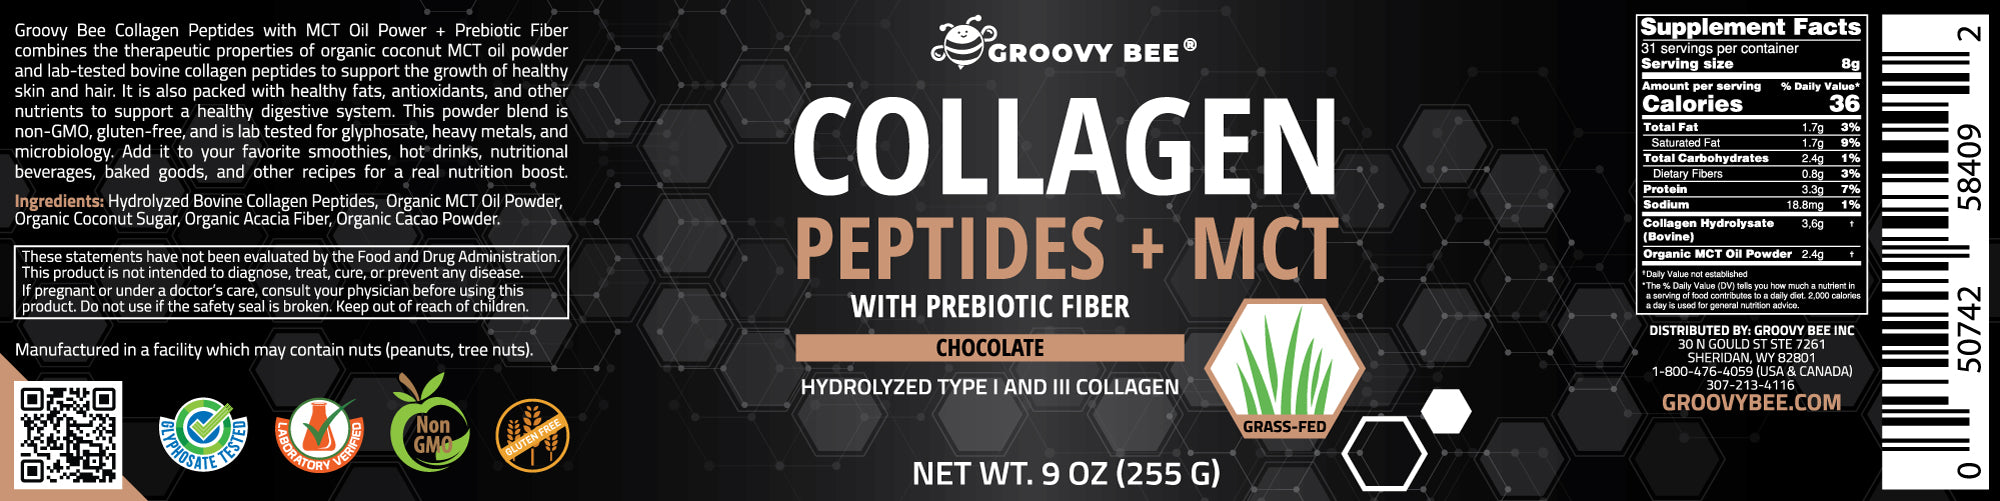 Groovy Bee® Collagen Peptides + MCT with Prebiotic Fiber - Chocolate 9 oz (255g)